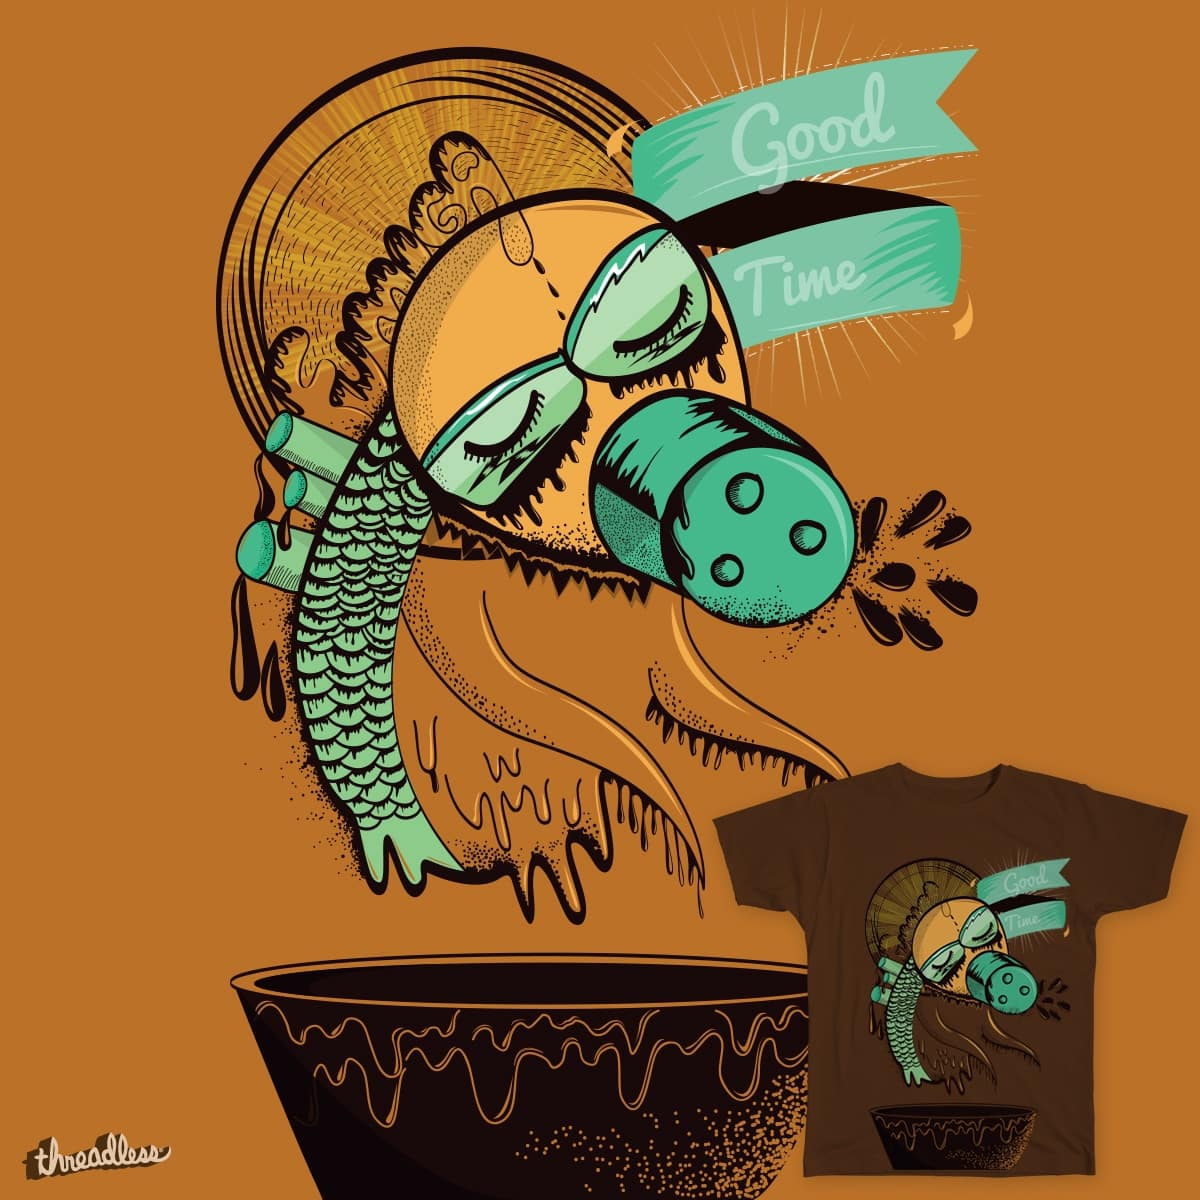 Good time by andreaga on Threadless